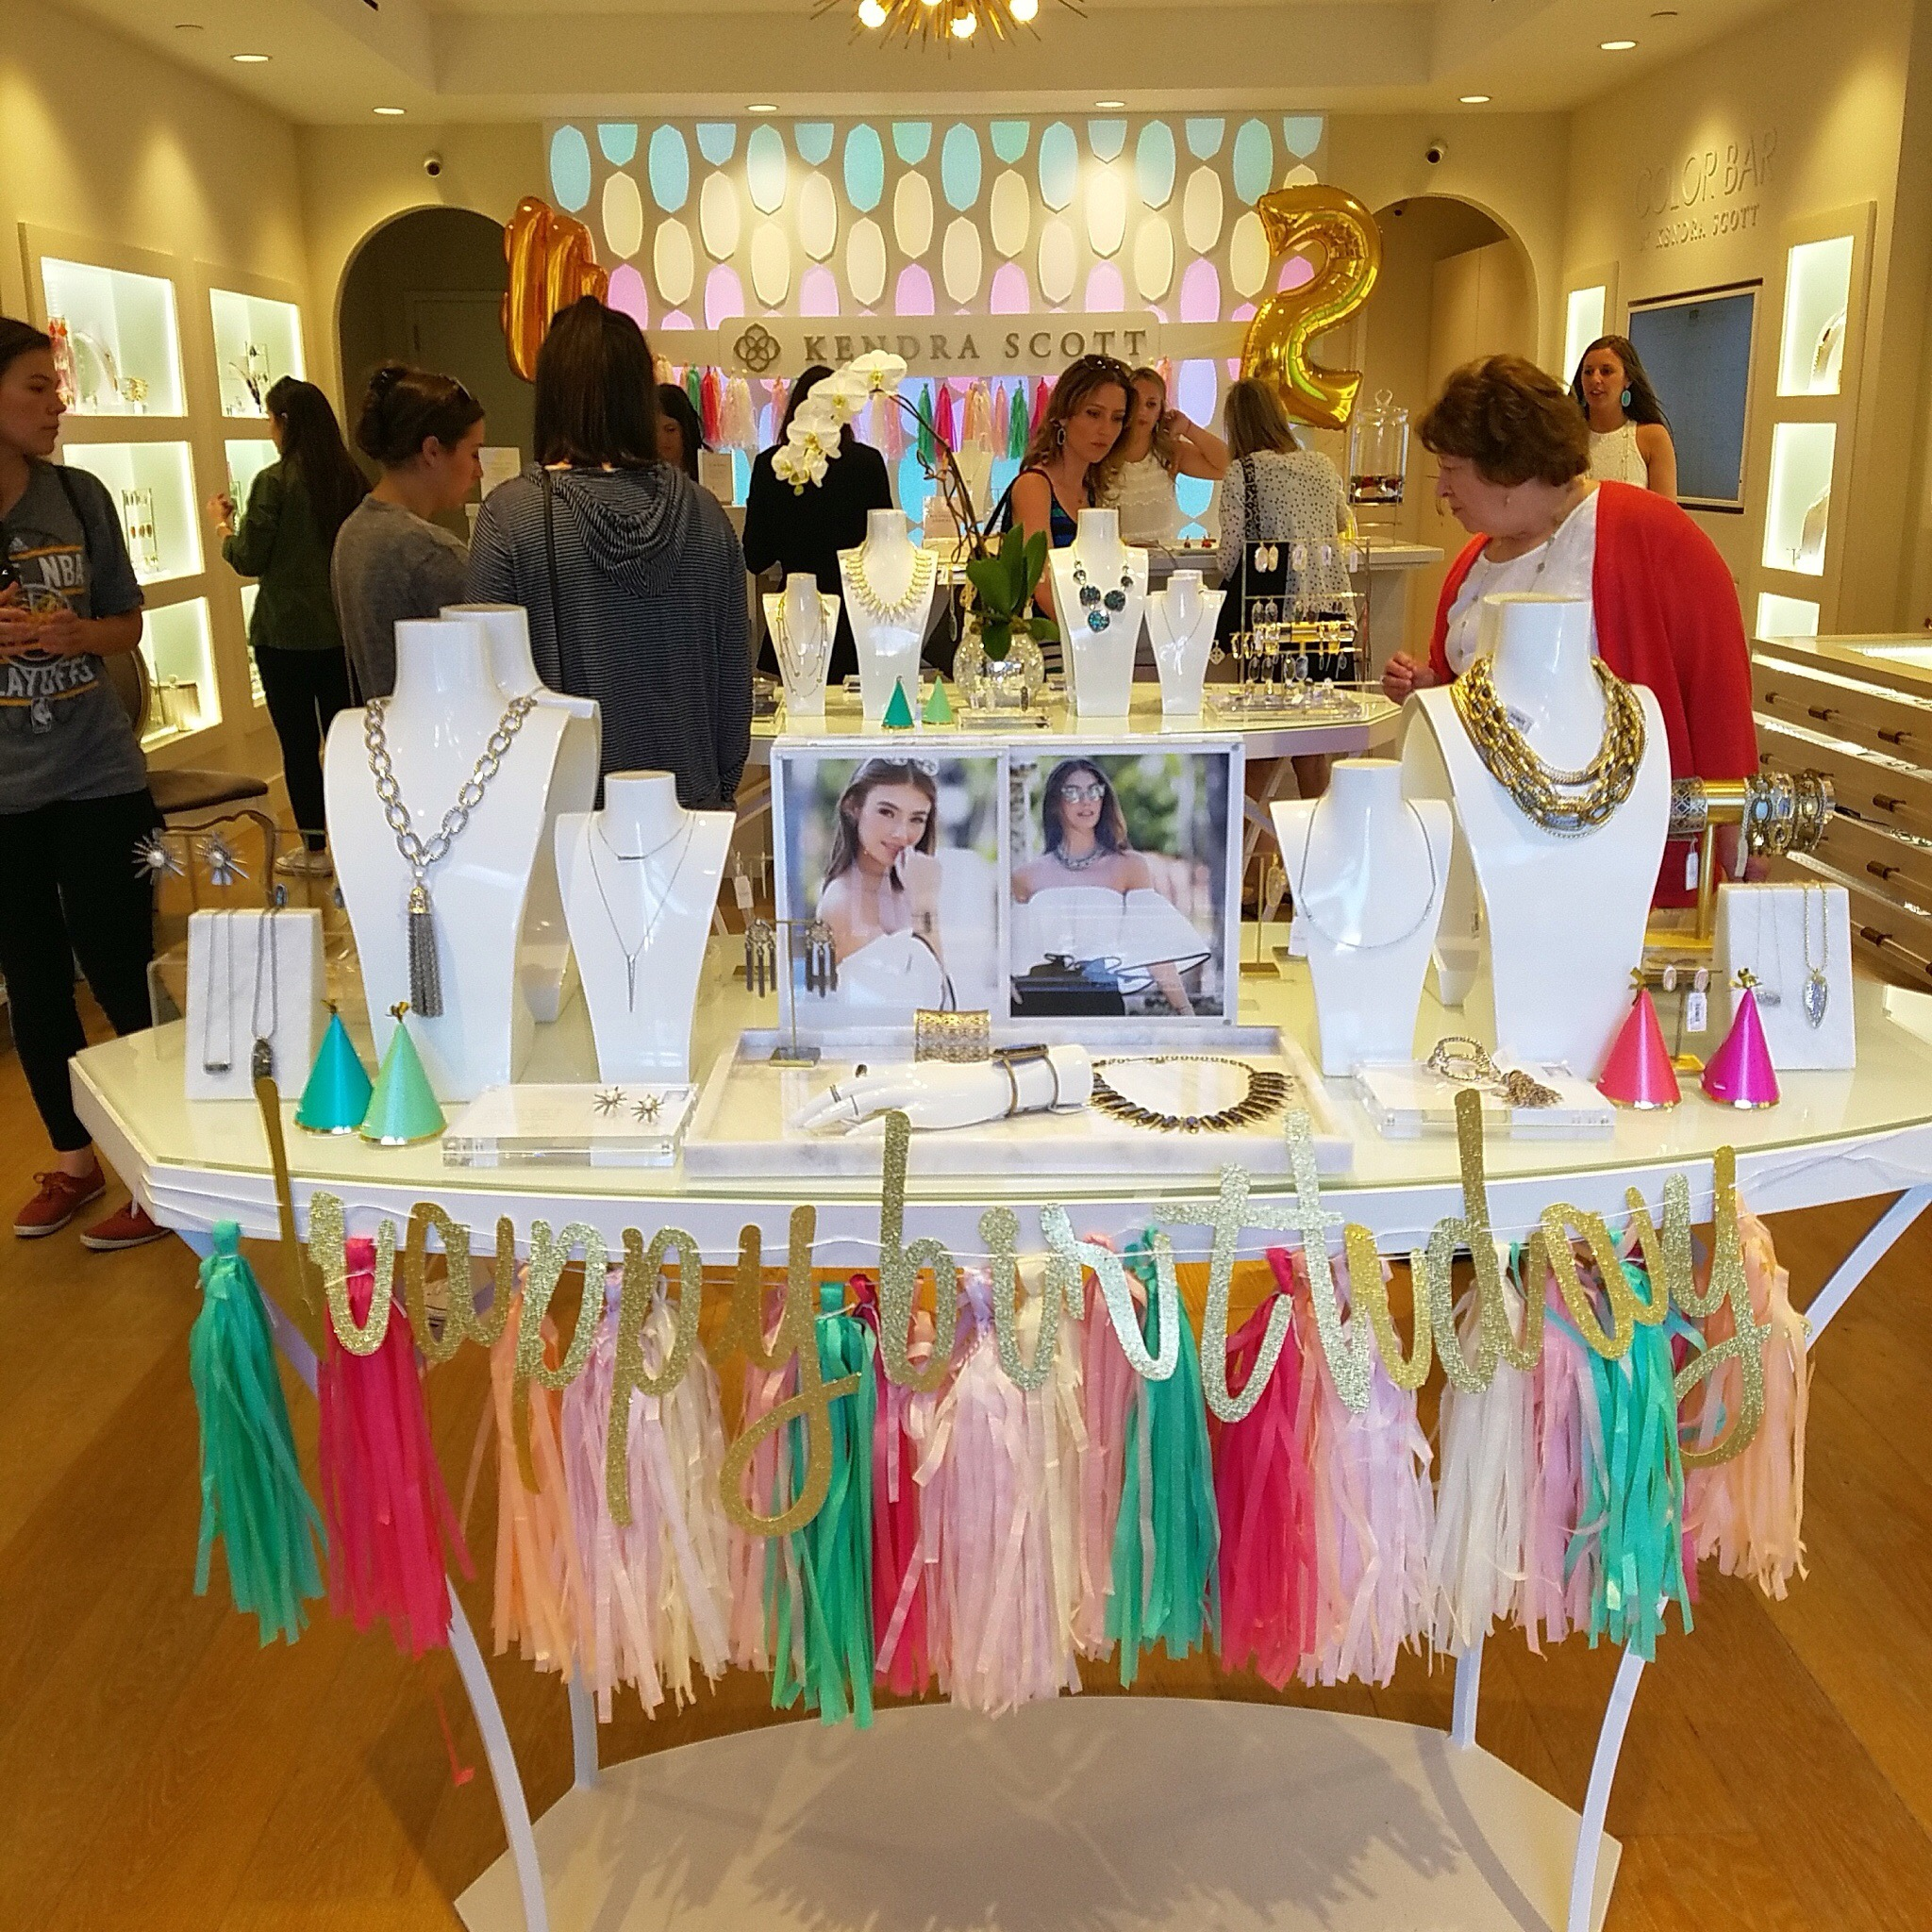 If your birthday has passed this year, Kendra Scott just added some new markdowns with savings up to 60% off. Kendra Scott is located at Hillsboro Road, Nashville. Hours of operation are Monday-Saturday, 10 a.m p.m., Sunday, noon-6 p.m. Follow Kendra Scott on Facebook for the latest offerings.